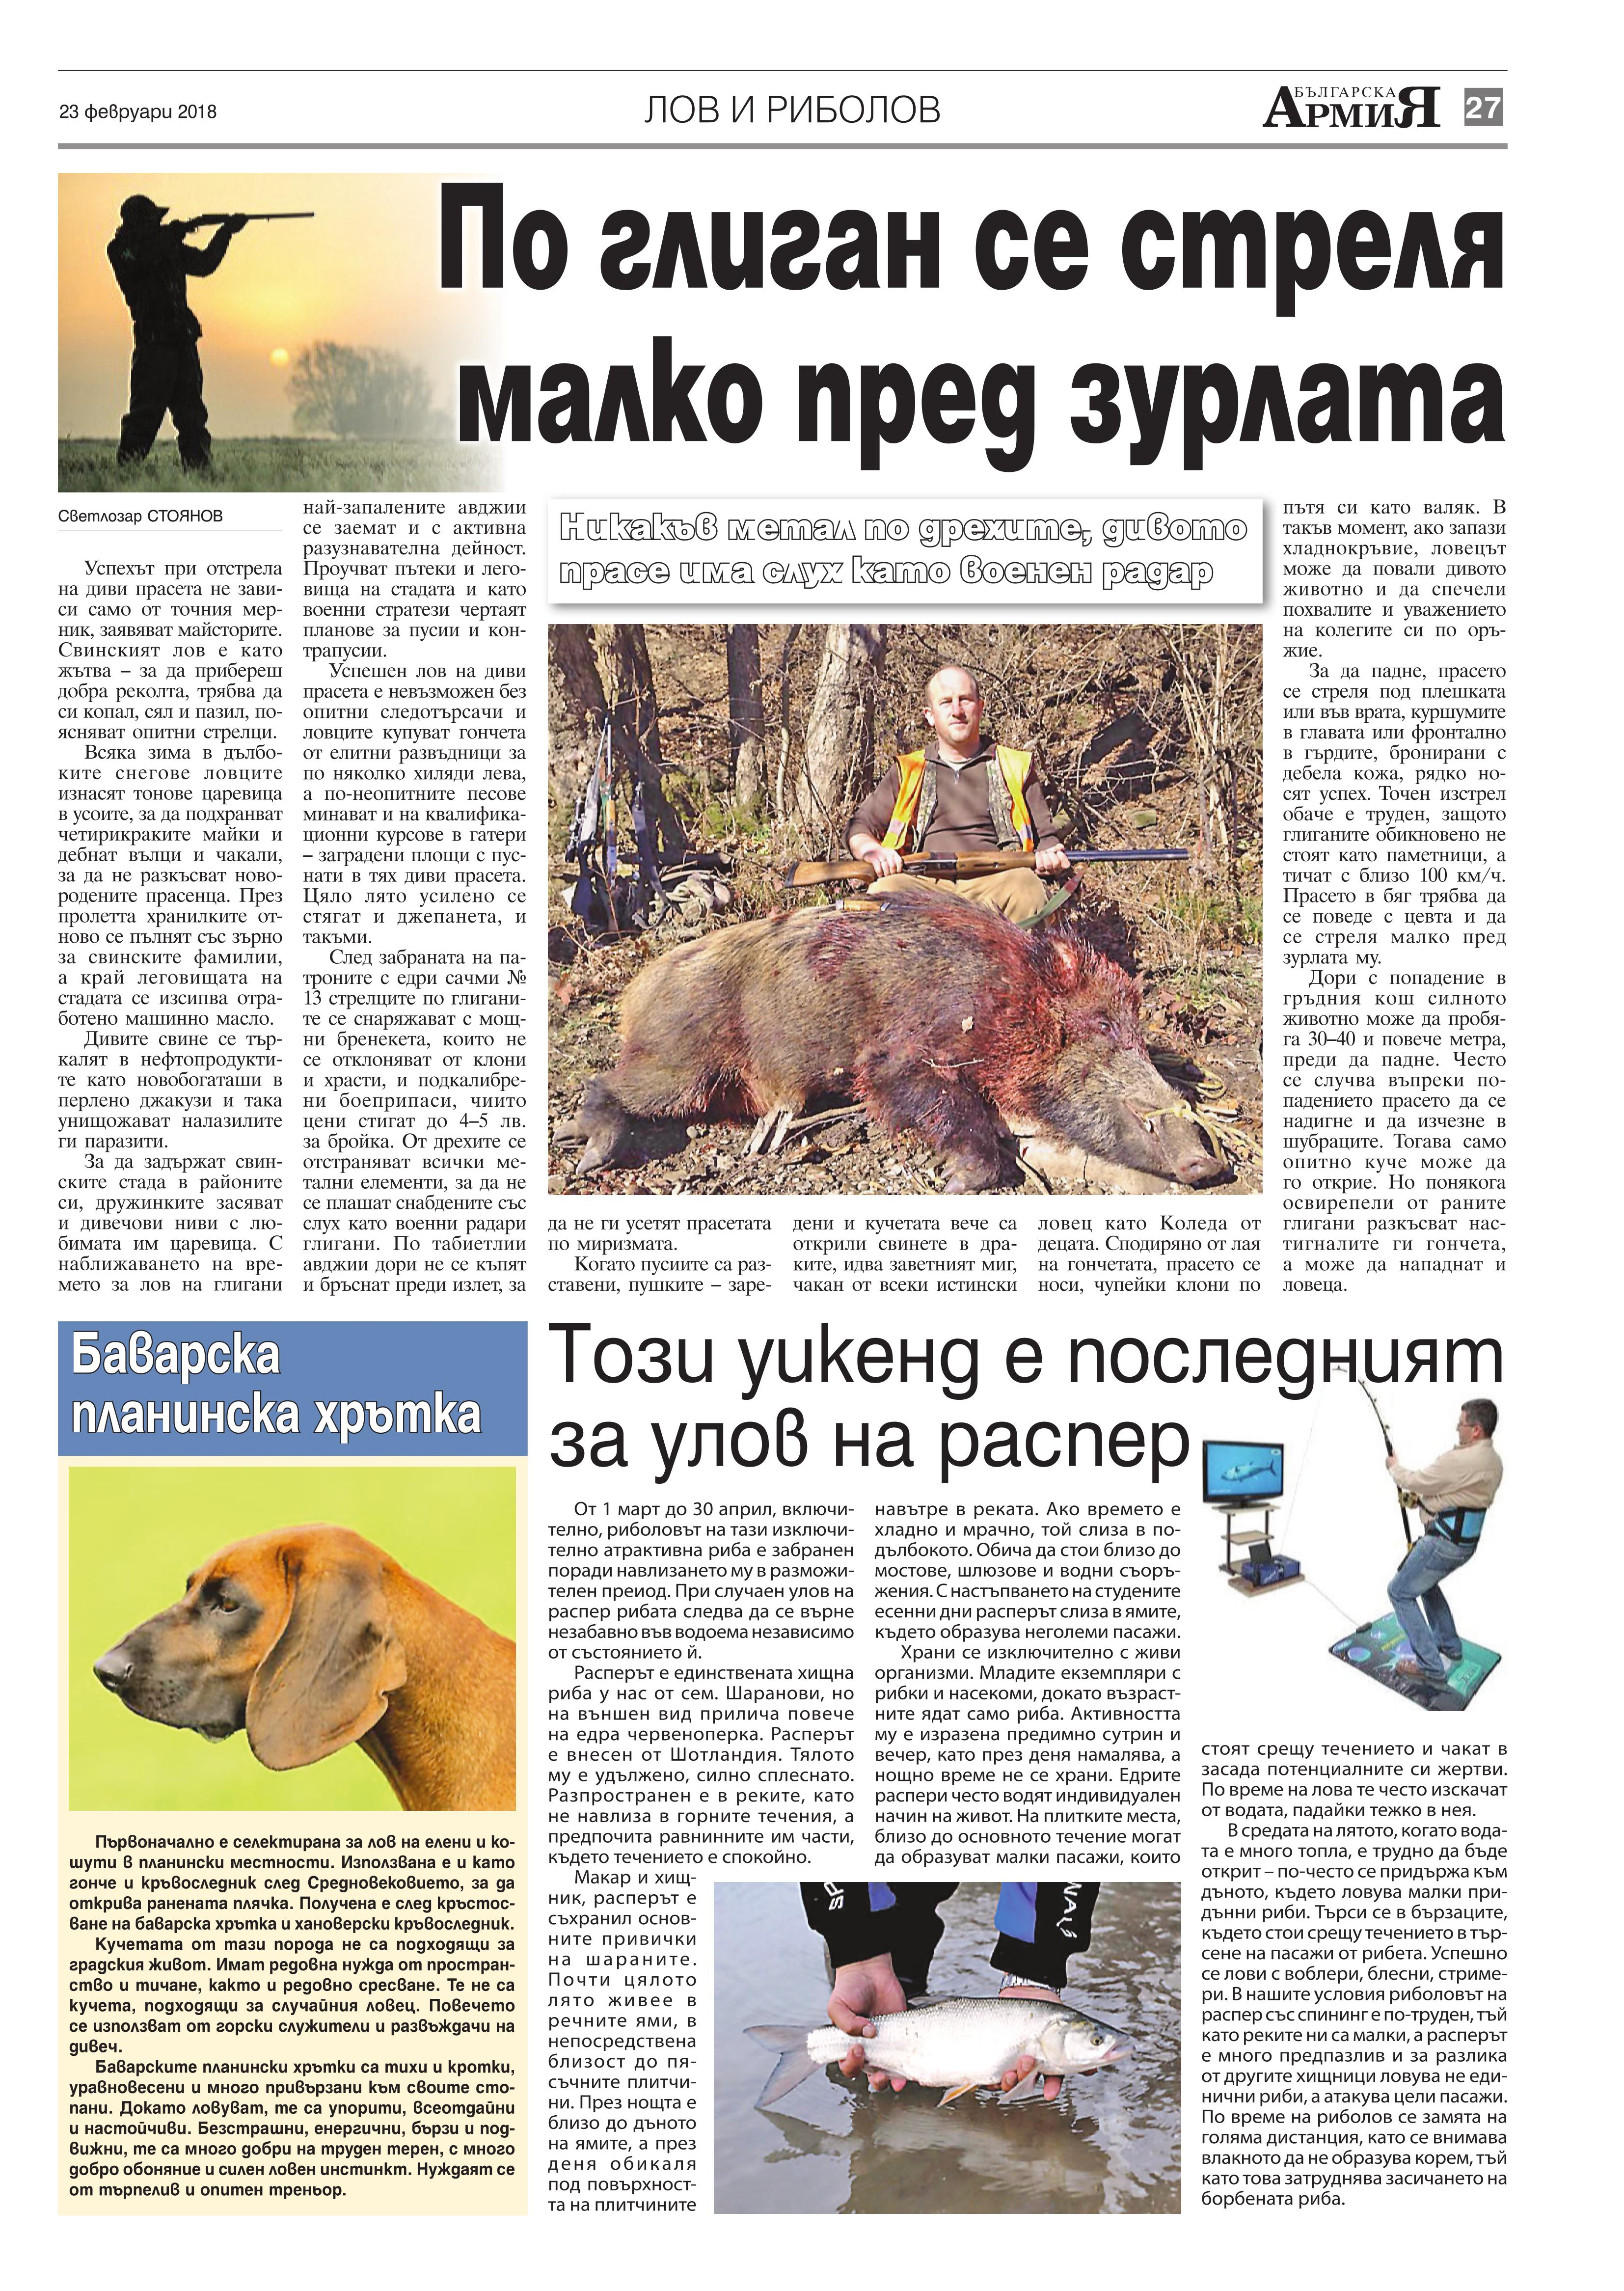 http://armymedia.bg/wp-content/uploads/2015/06/27.page1_-35.jpg